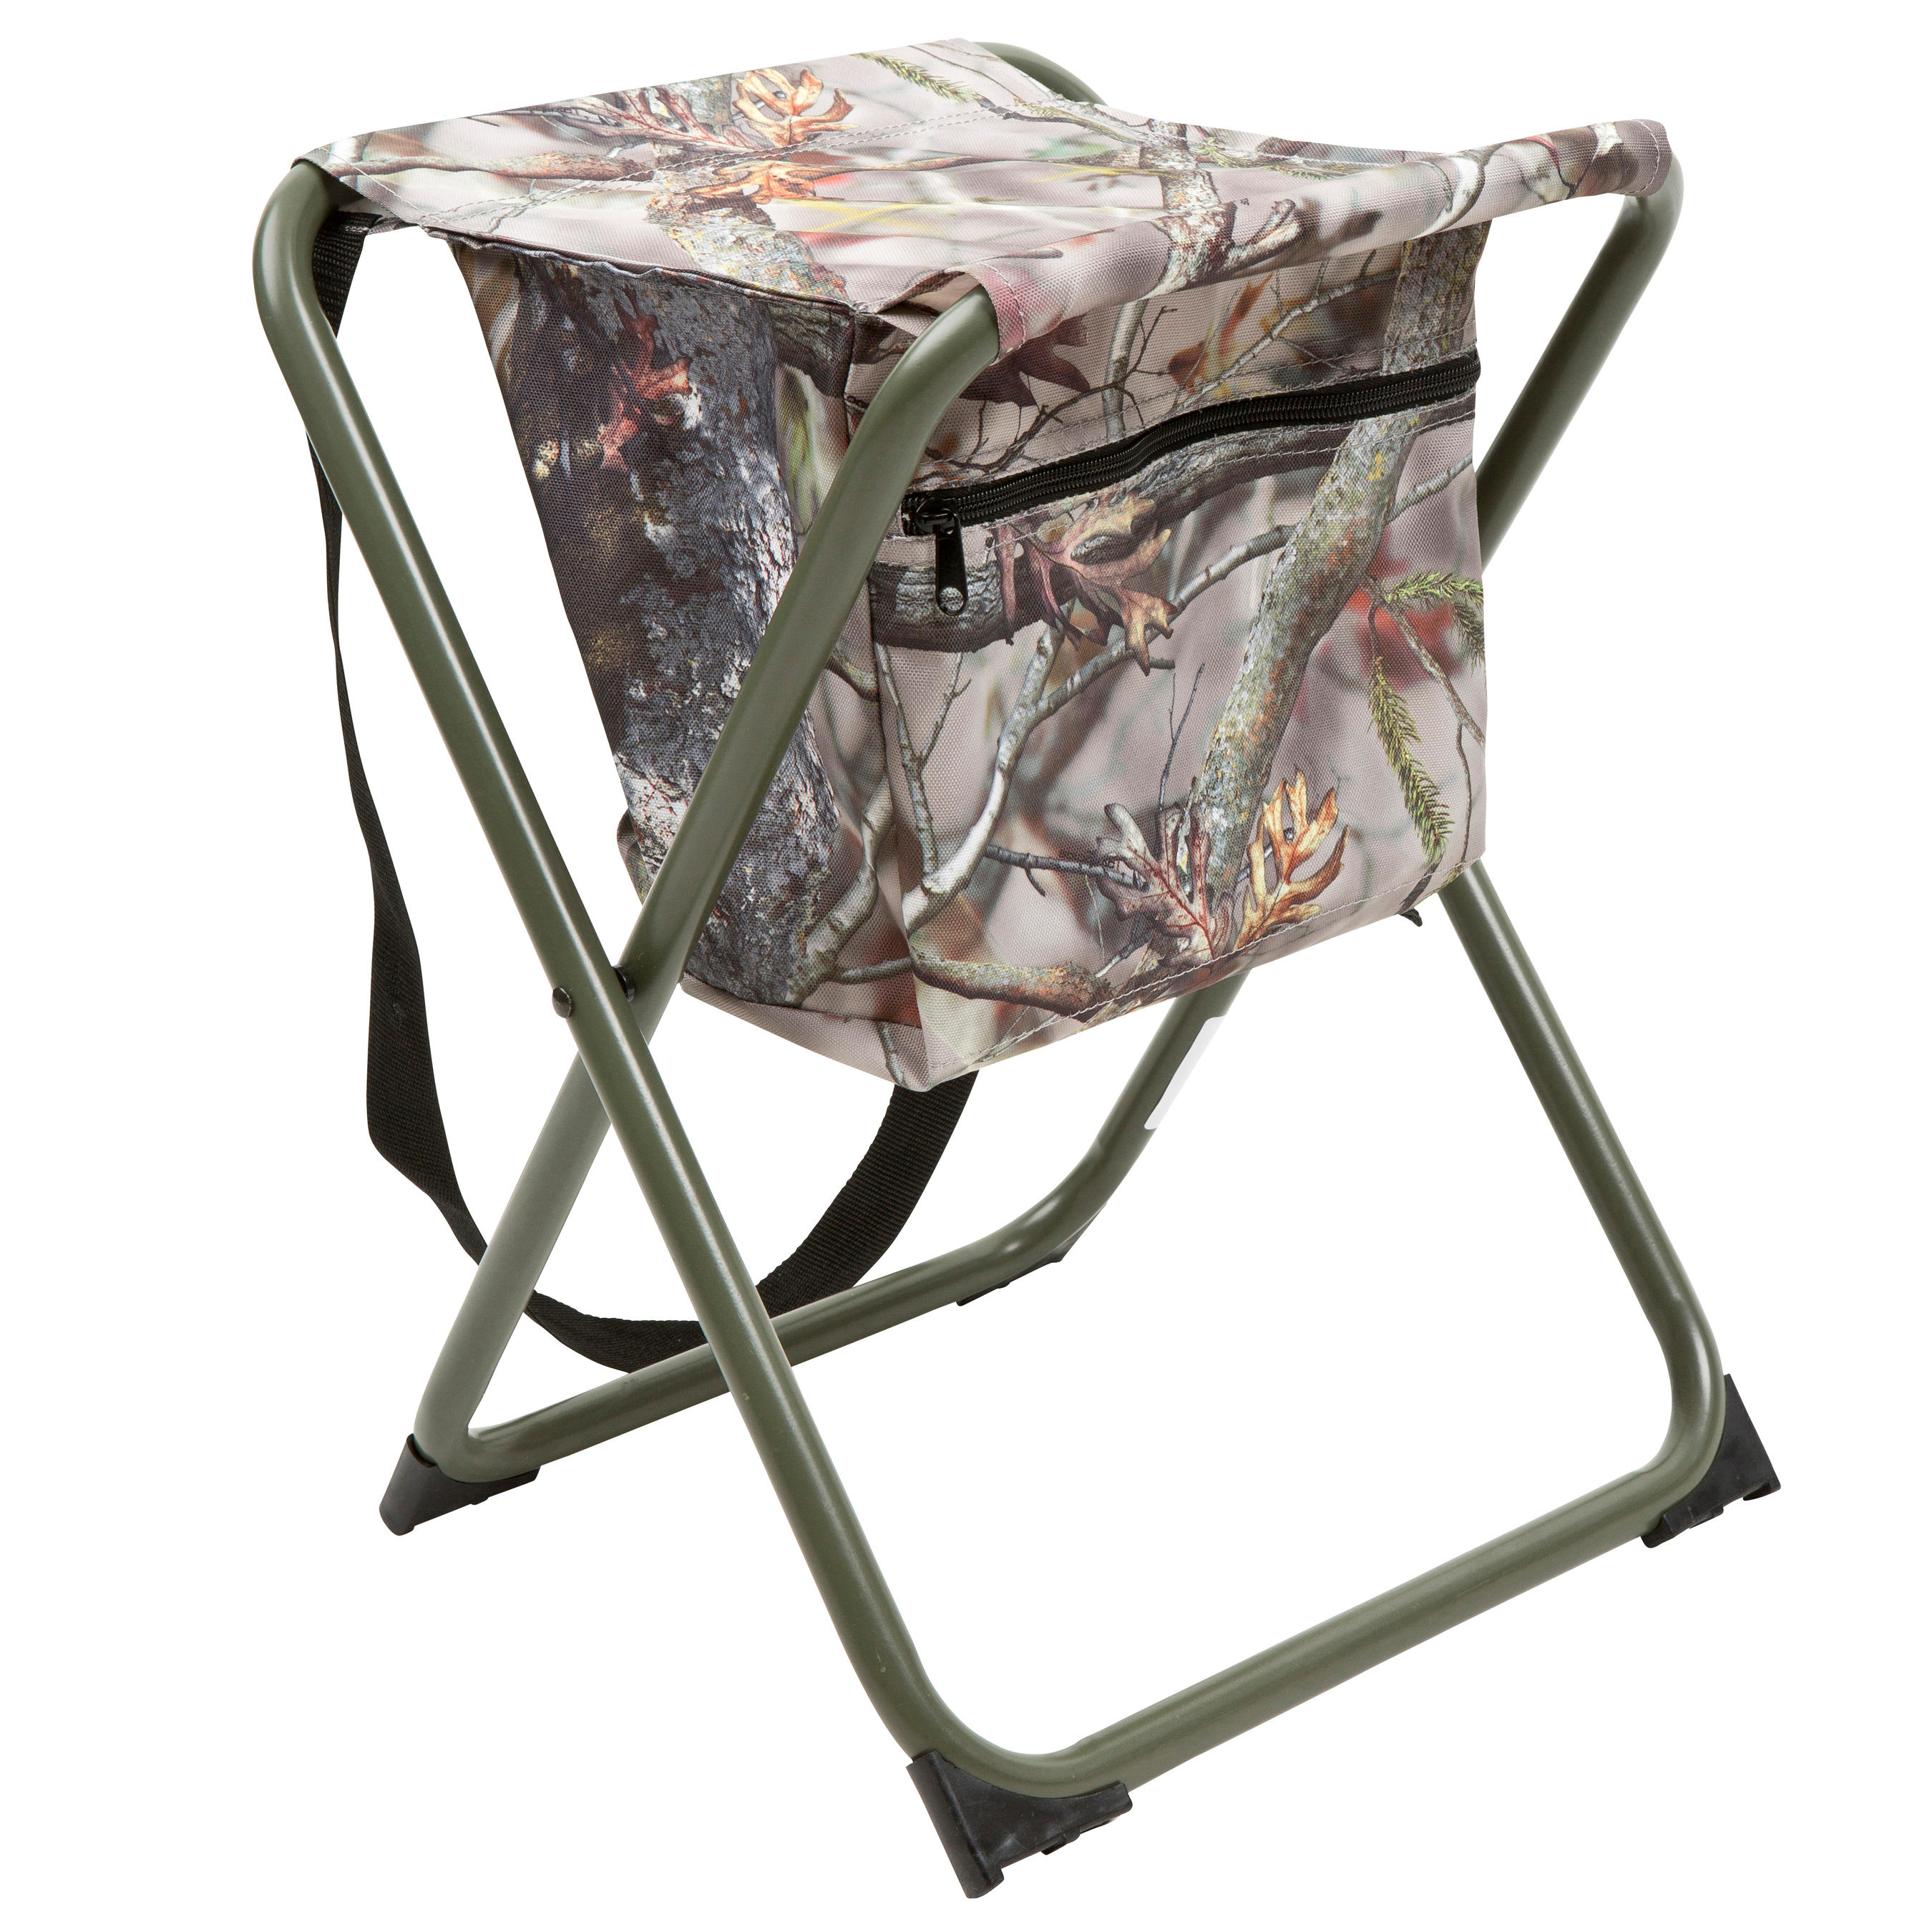 Chaise chasse poche camouflage marron